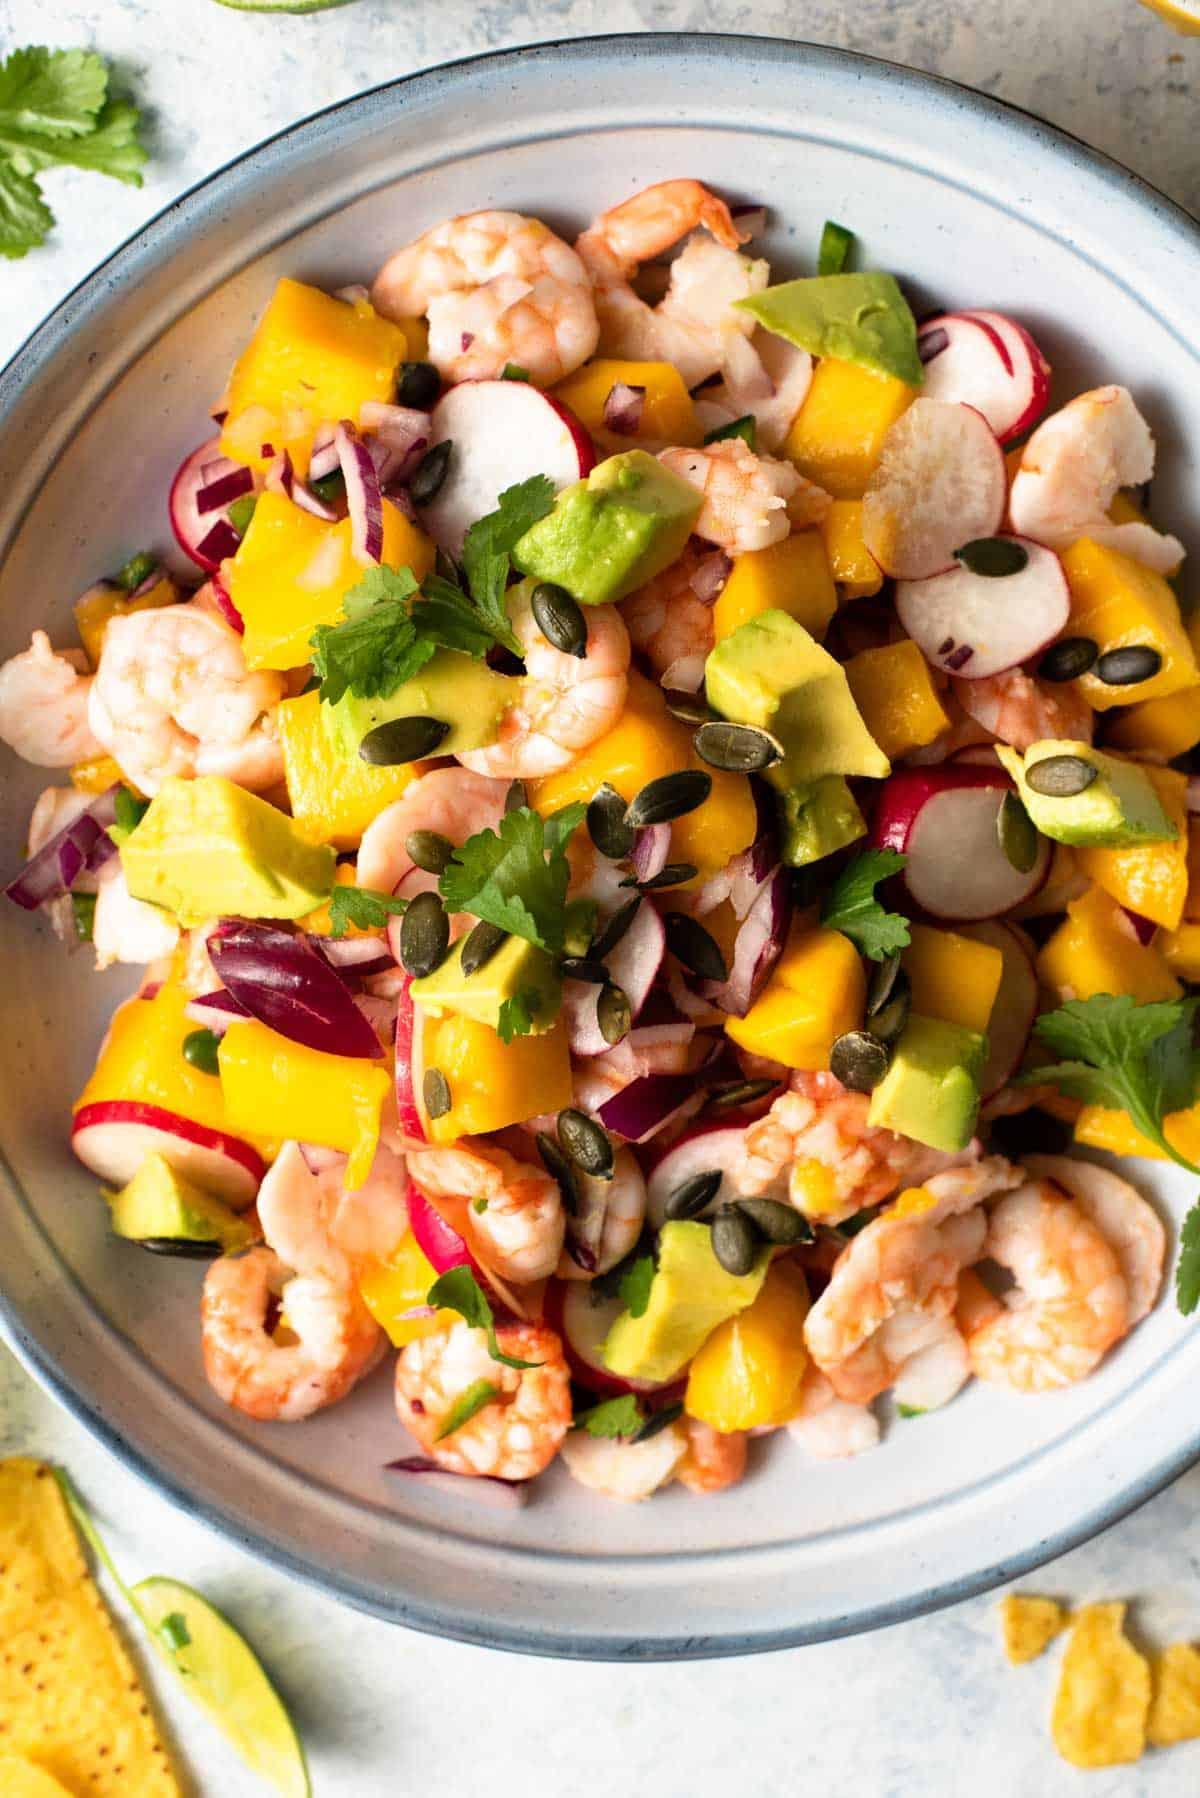 A close up of shrimp, avocado and mango in a bowl with other veggies